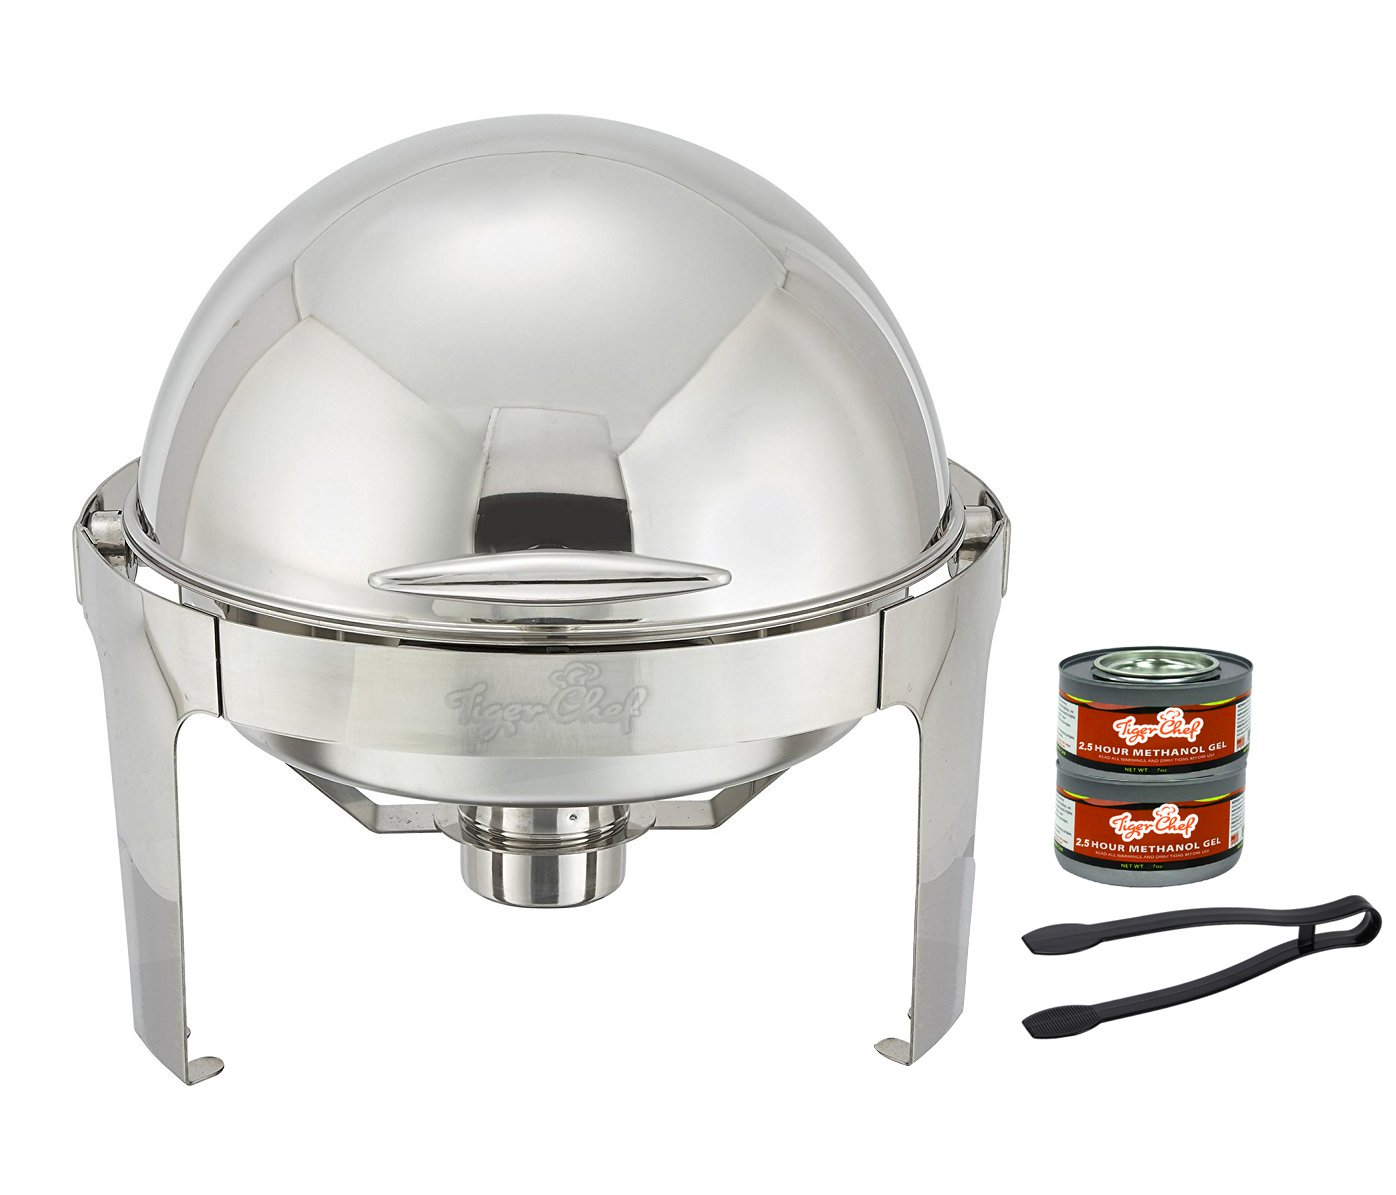 Tiger Chef Stainless Steel Round Roll Top Chafer, 6 Quart Chafing Dish Set with 2 Chafing Dish Fuel Gels and a Serving Tong